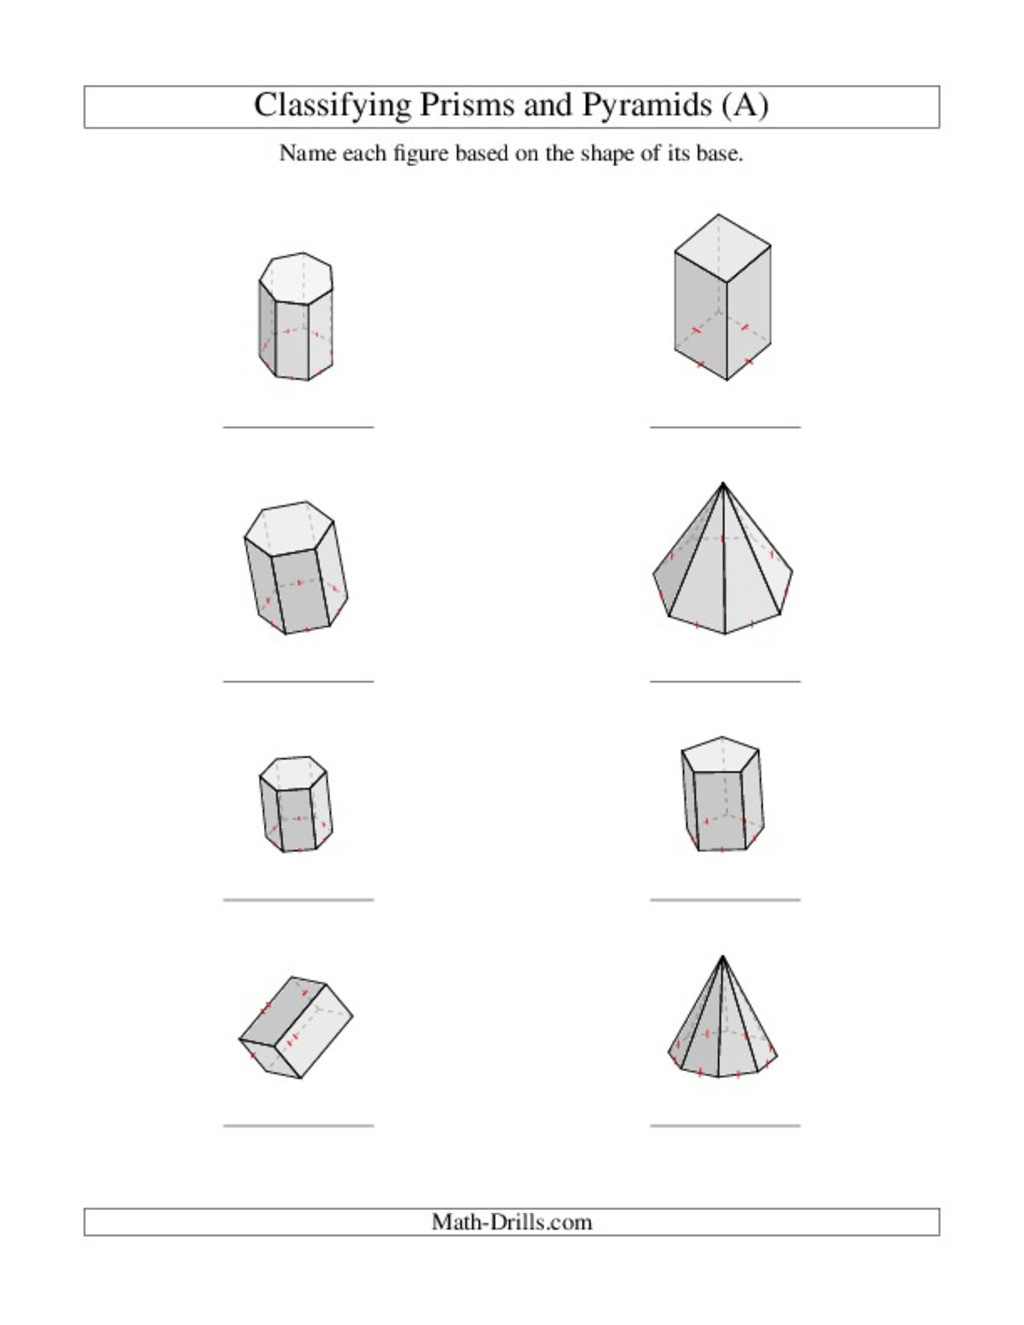 Sorting Shapes Worksheets First Grade 3d Shapes Lesson Plans & Worksheets Reviewed by Teachers